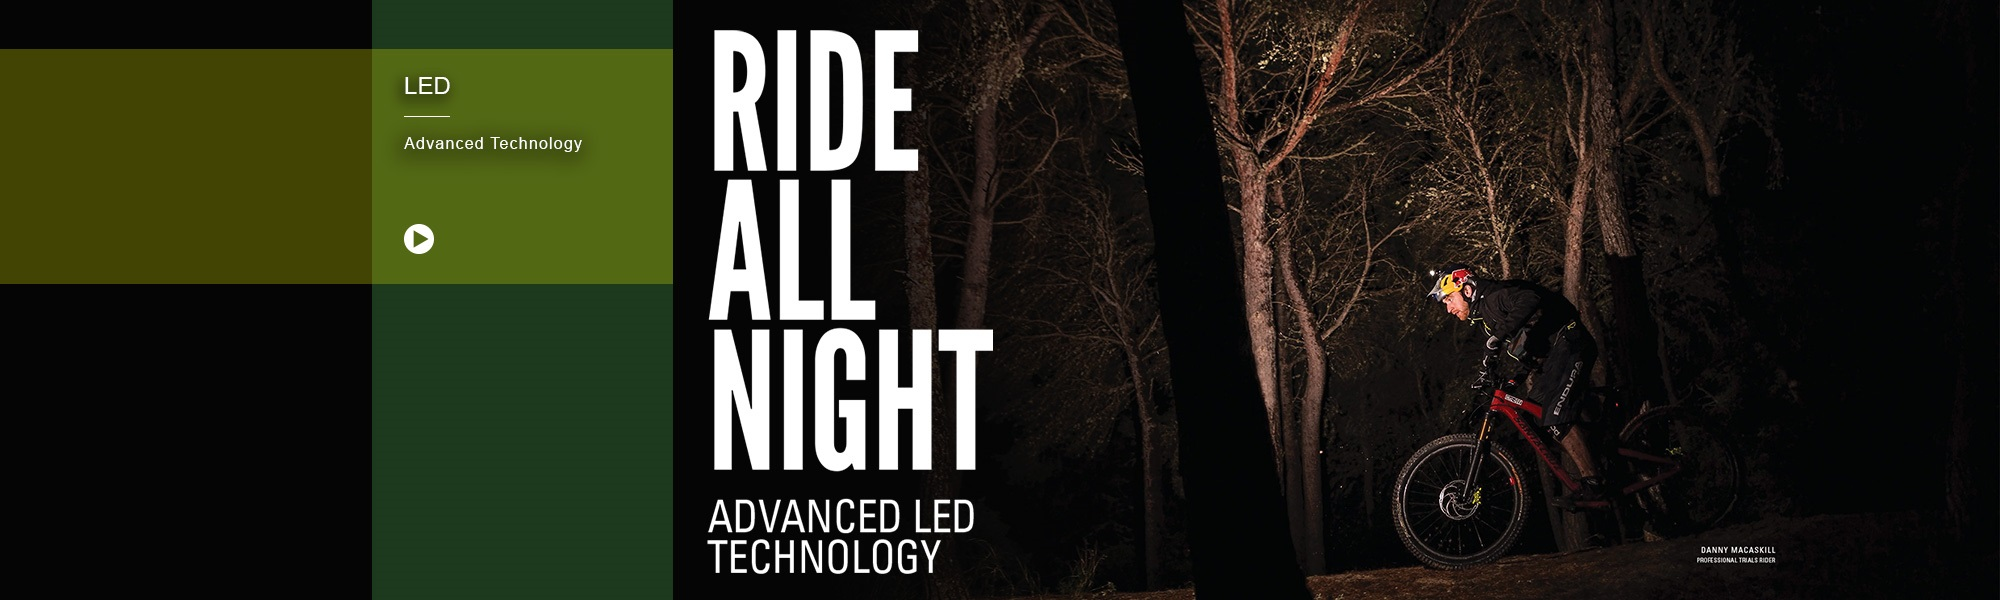 Upgradebikes.co.uk_brand_banners_Lezyne_Ride_Alnight